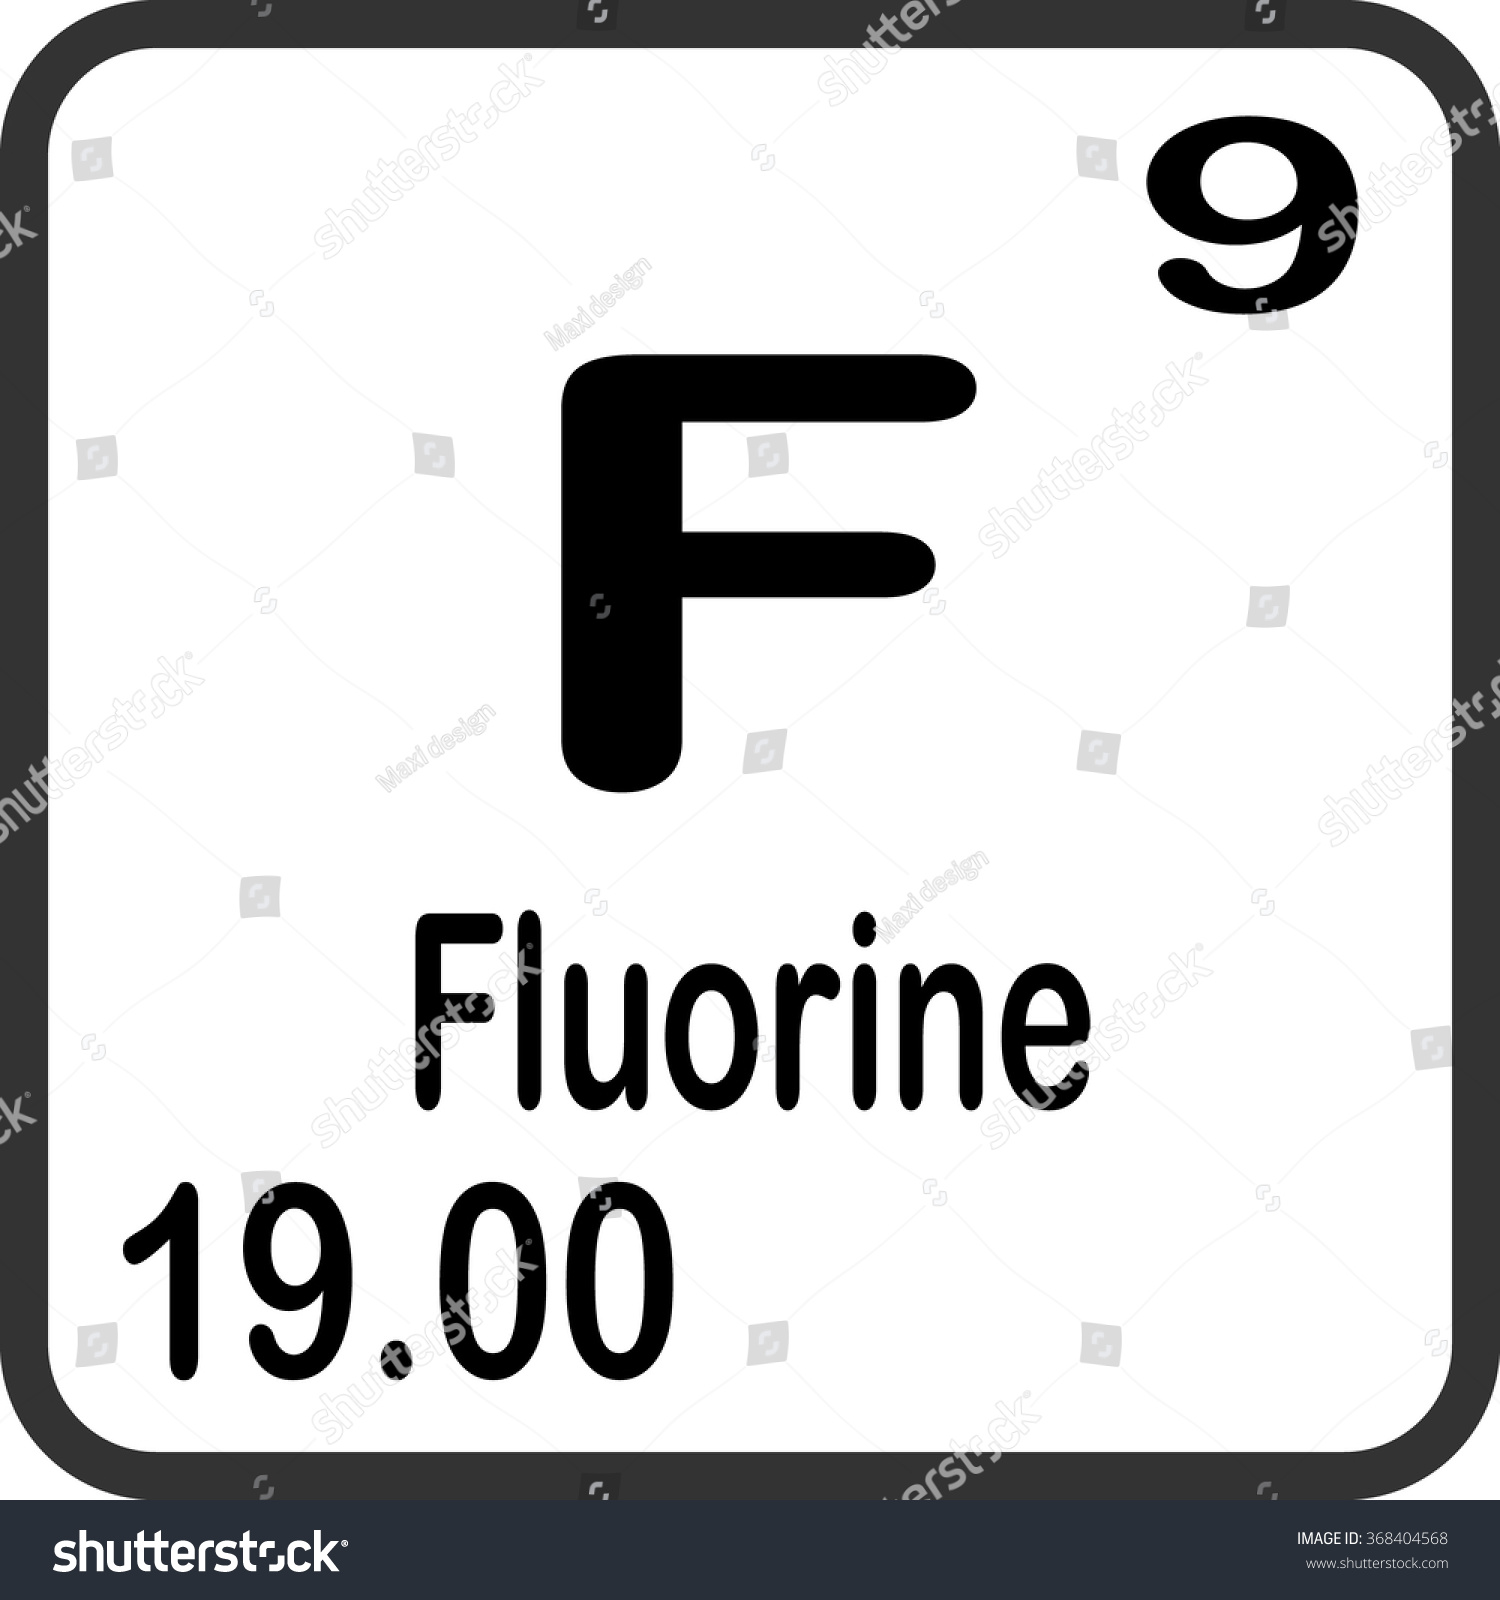 Group 7 periodic table name gallery periodic table images group 7 periodic table facts gallery periodic table images radon periodic table facts image collections periodic gamestrikefo Image collections